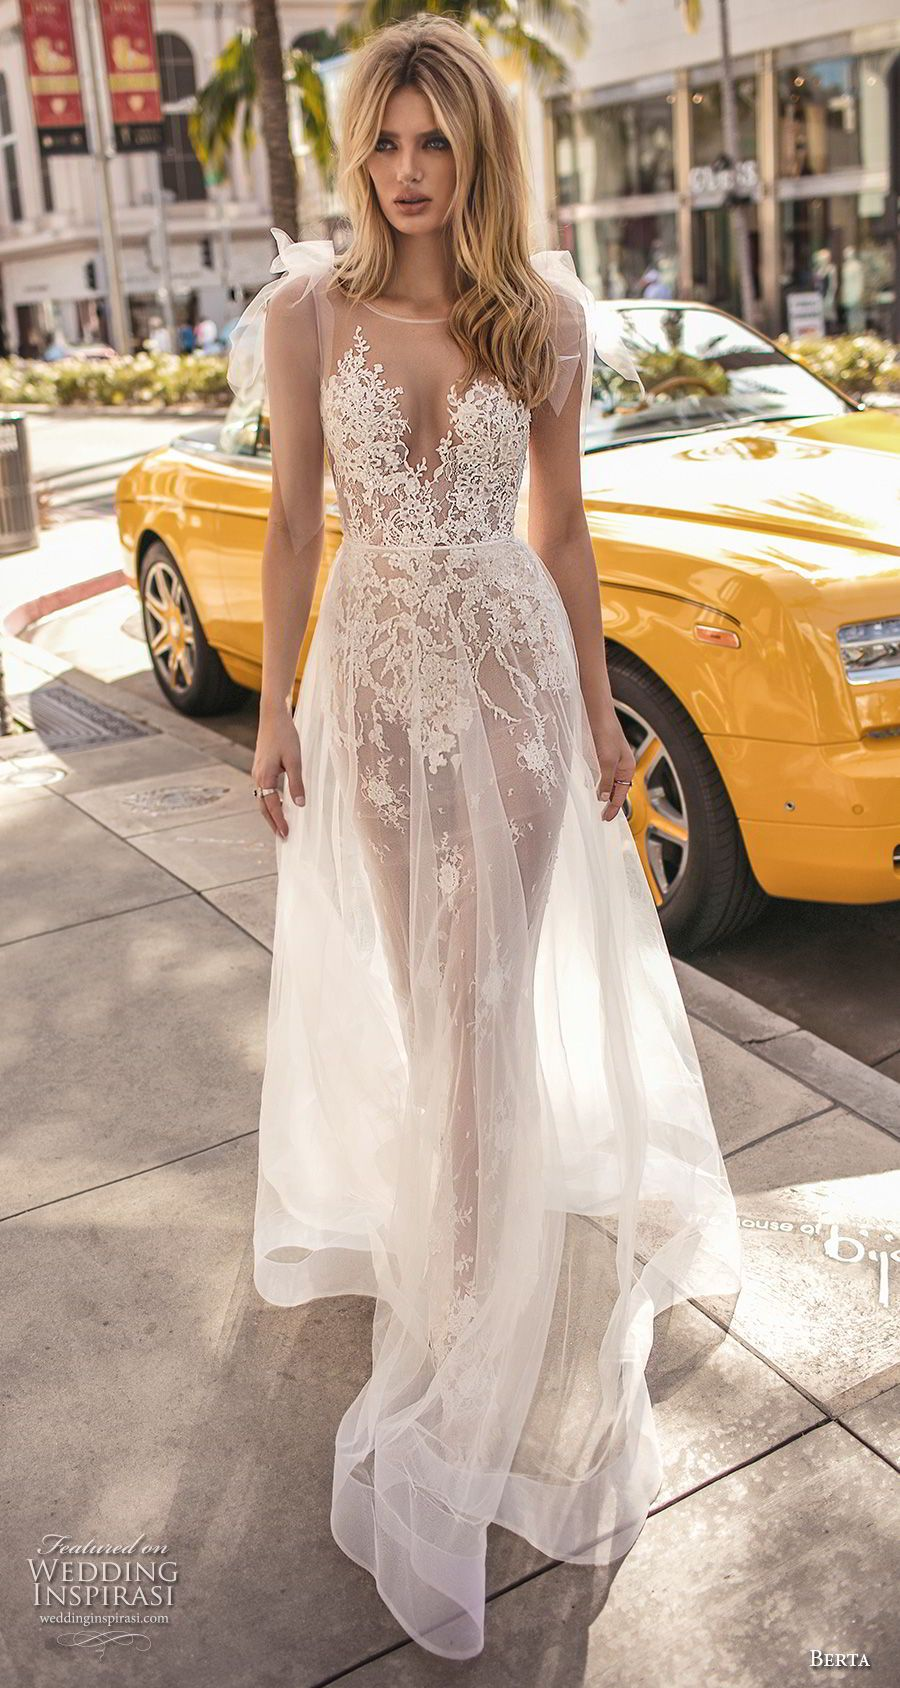 Muse by Berta  Wedding Dresses u ucCity of Angelsud Bridal